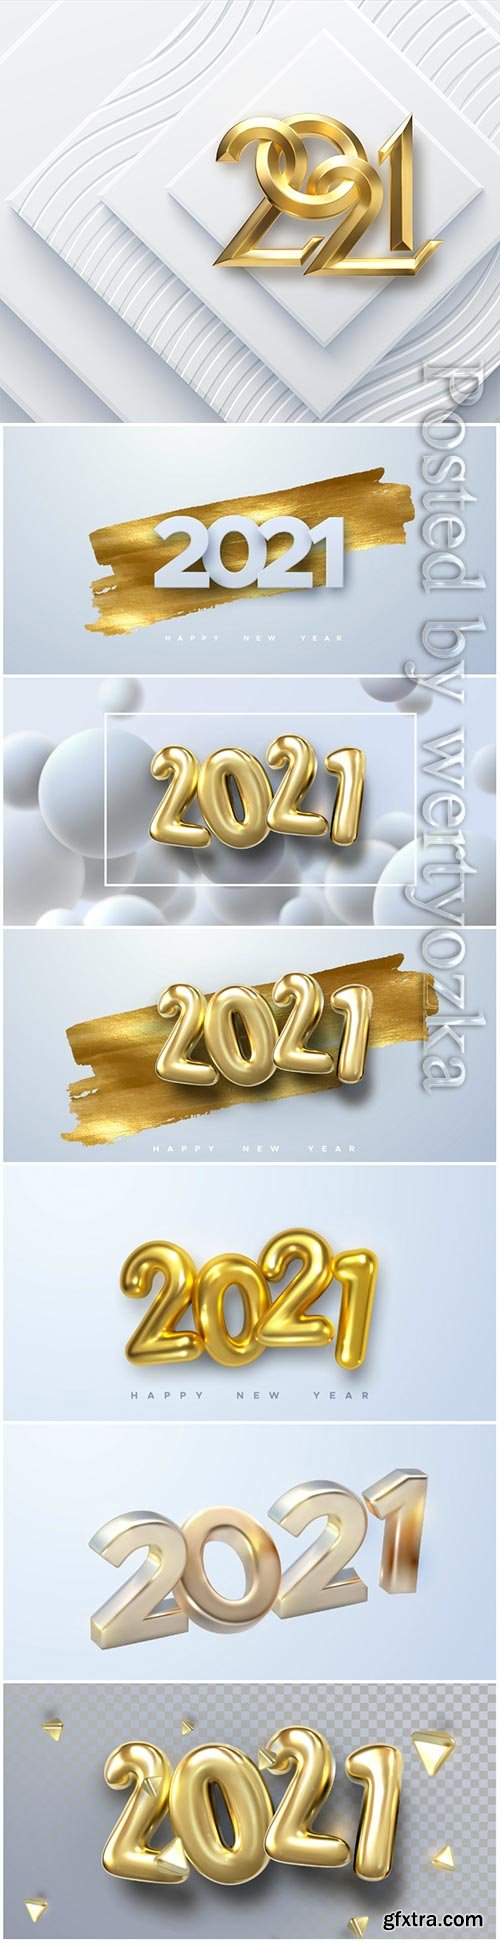 Elegant numbers 2021 for new year vector illustration